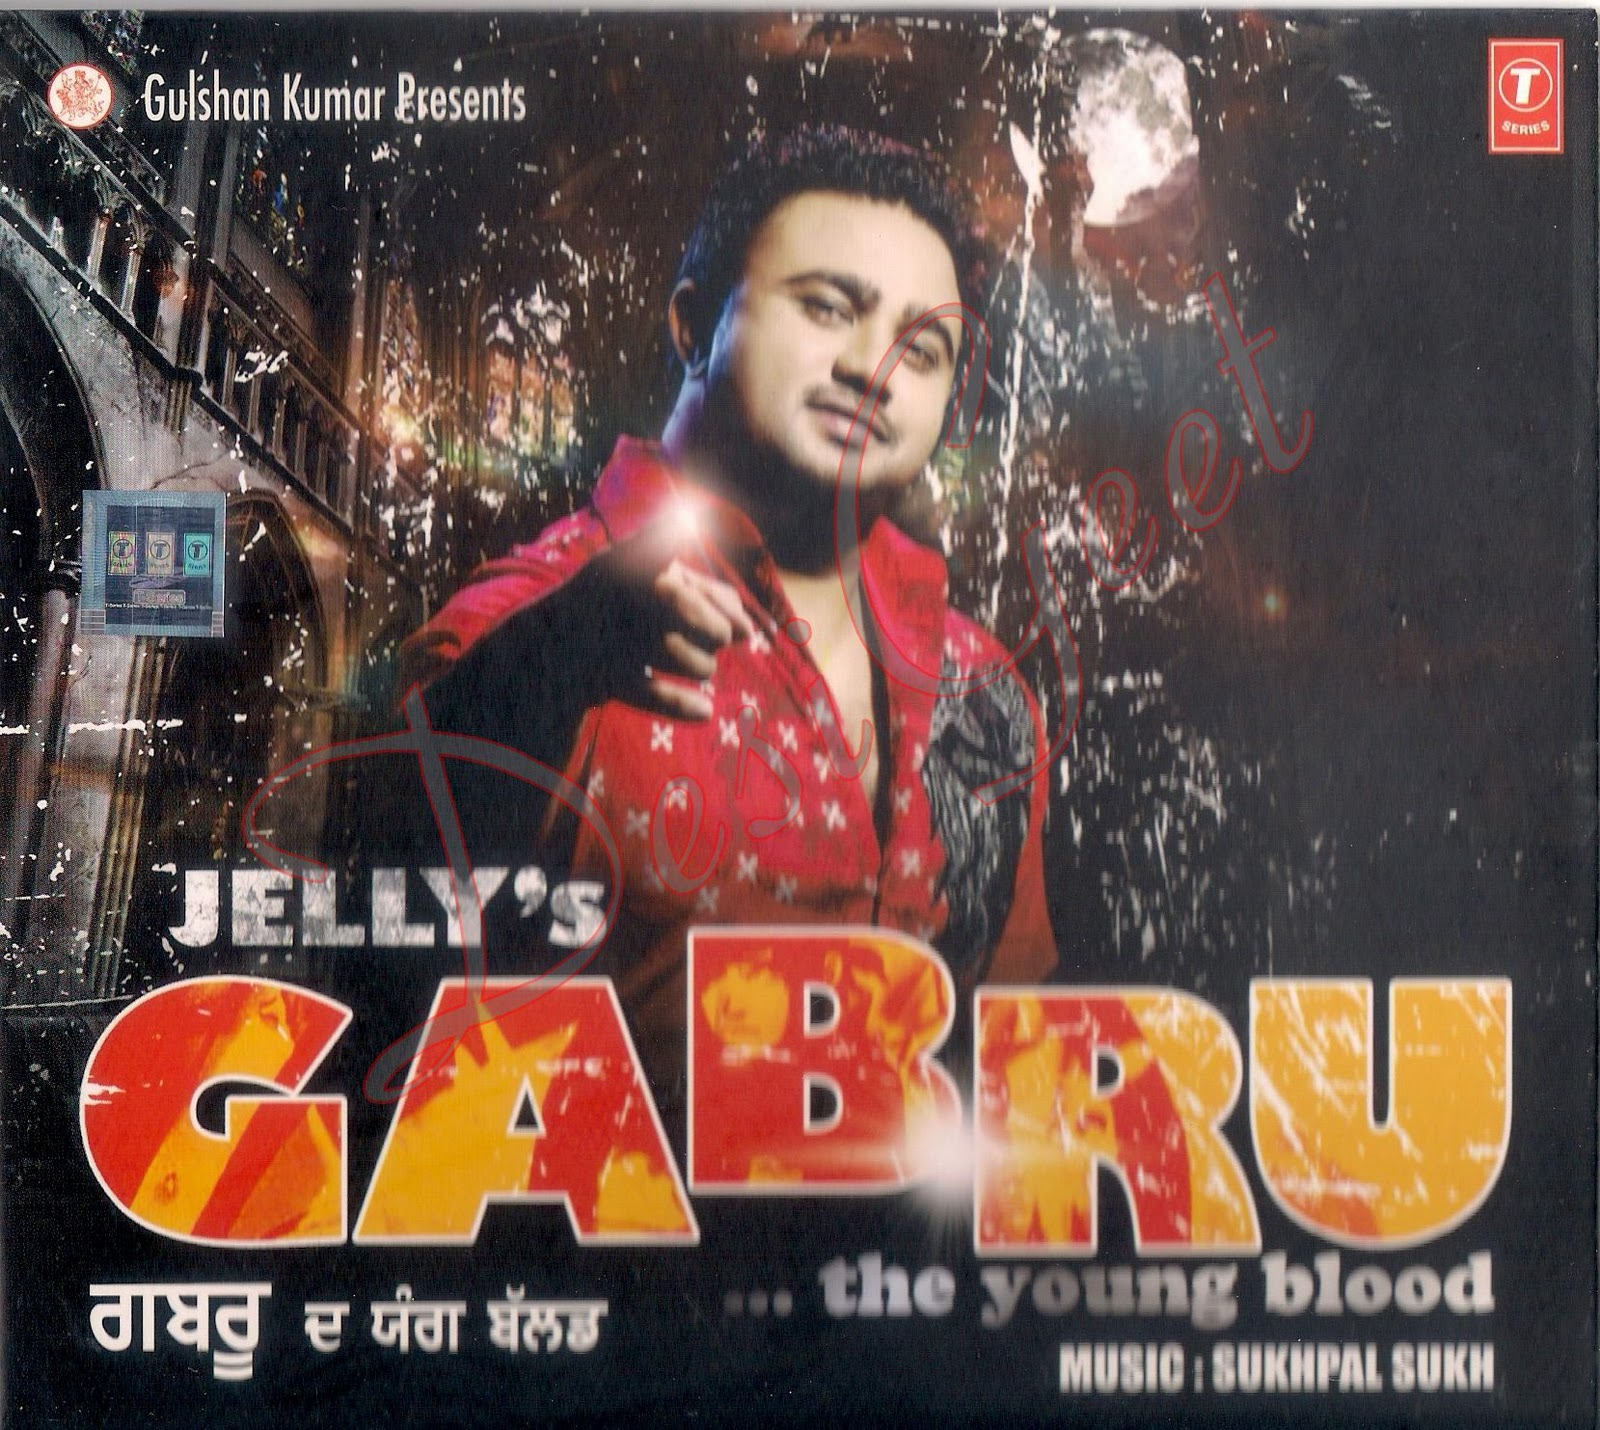 No Need Full Punjabi Mp3 Song Download: Top 101 Reviews: New Punjabi Album Gabru The Young Blood